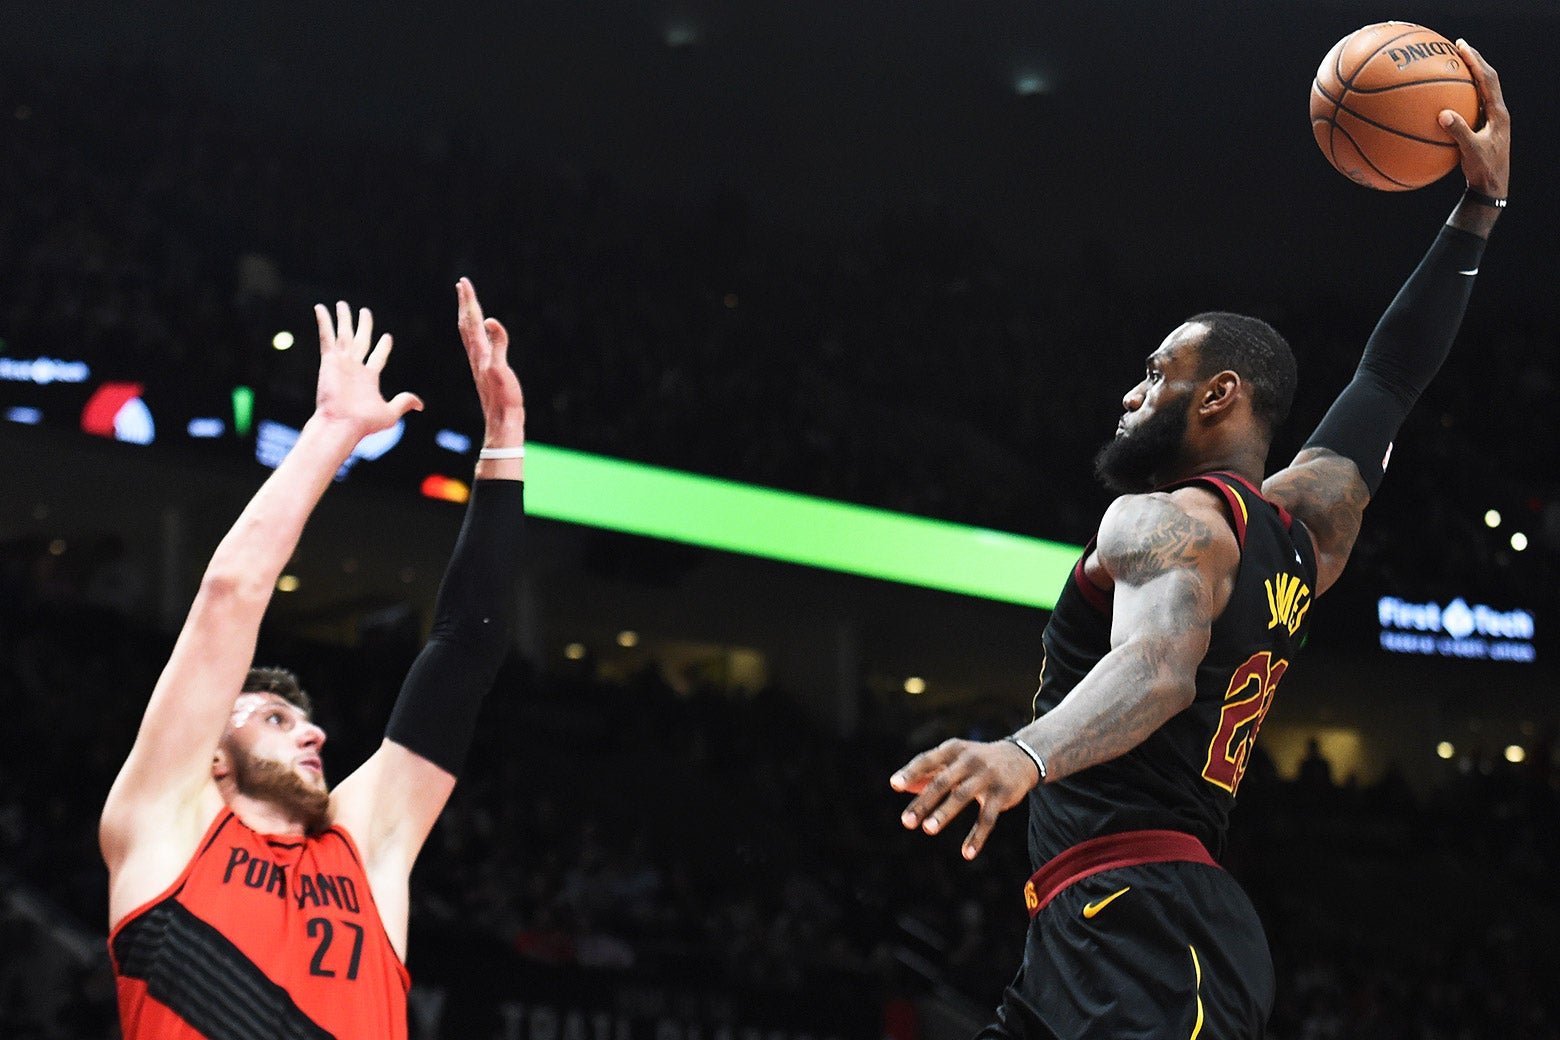 Cleveland Cavaliers forward LeBron James, right, goes up for a dunk on Portland Trail Blazers center Jusuf Nurkic on Thursday, March 15, 2018.